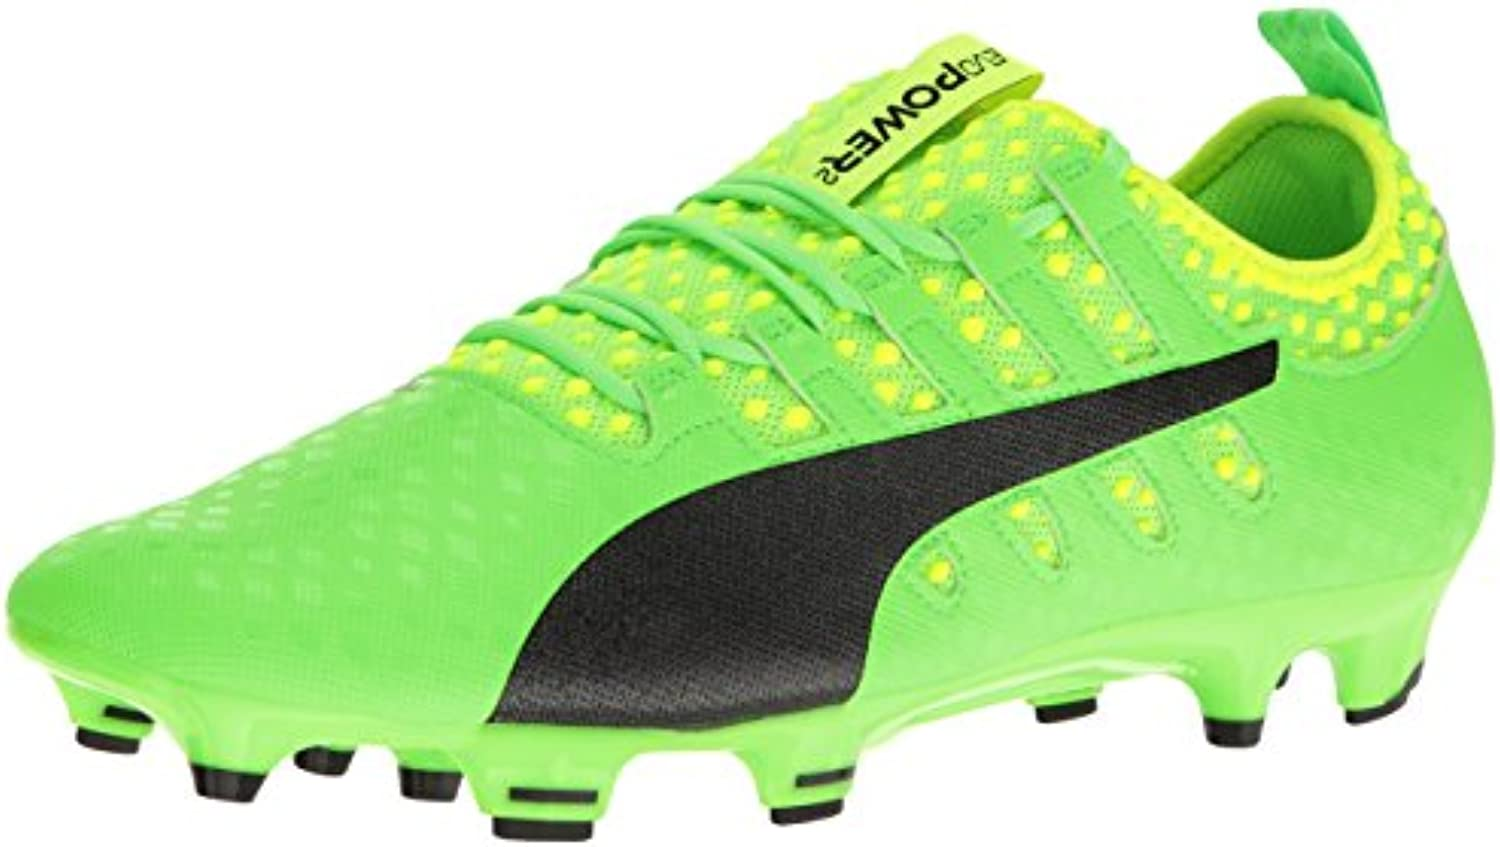 Puma Men's evoPOWER Vigor 1 FG Soccer Shoe